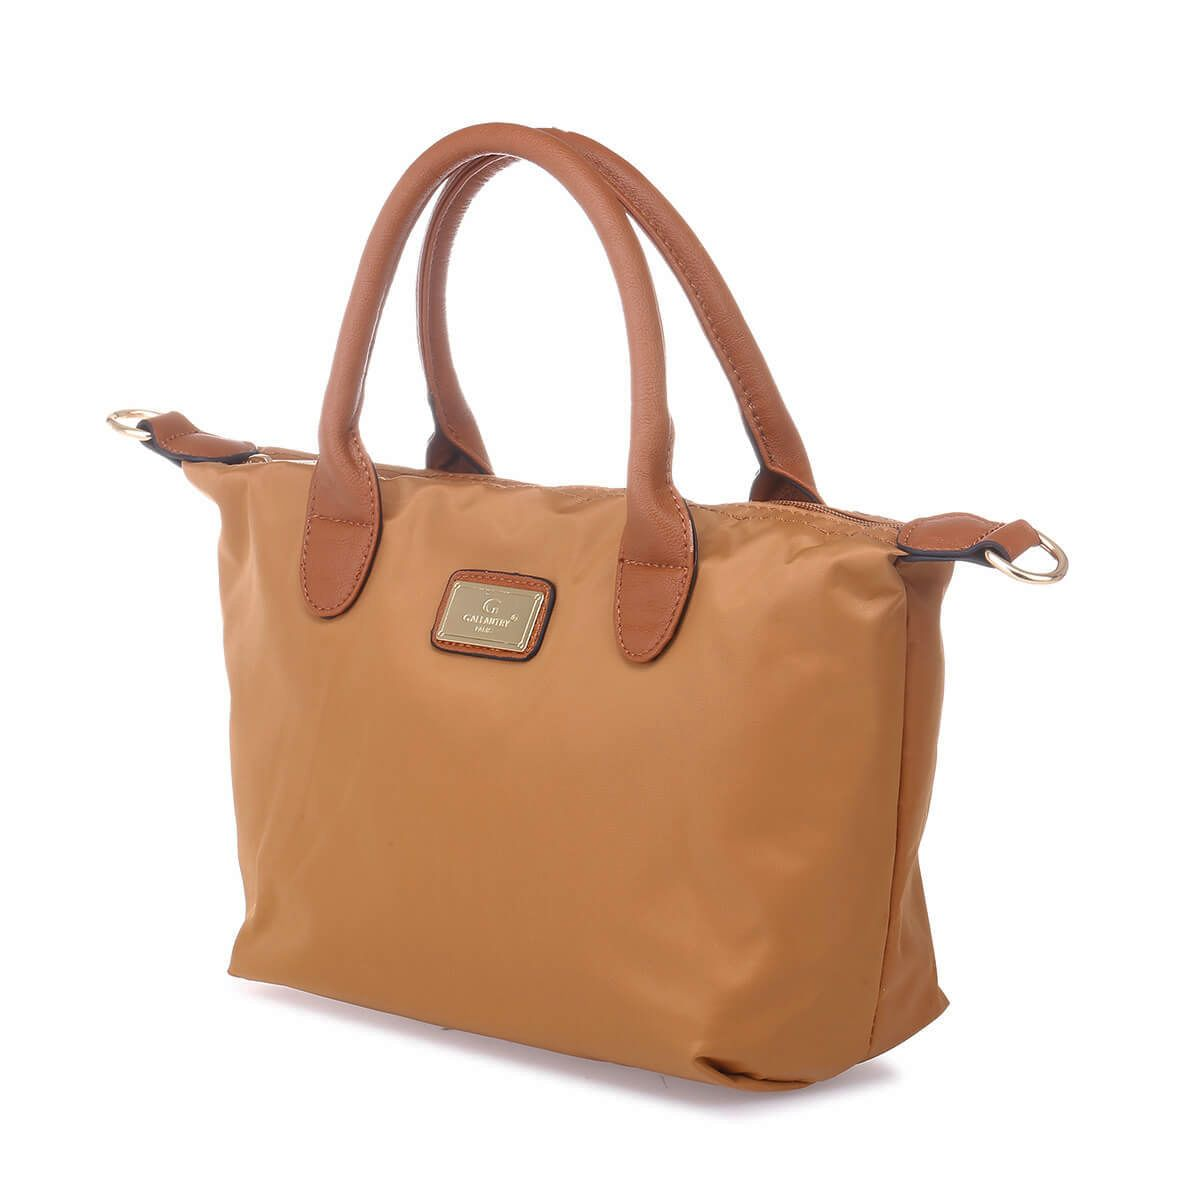 Sac cabas camel small style shopping